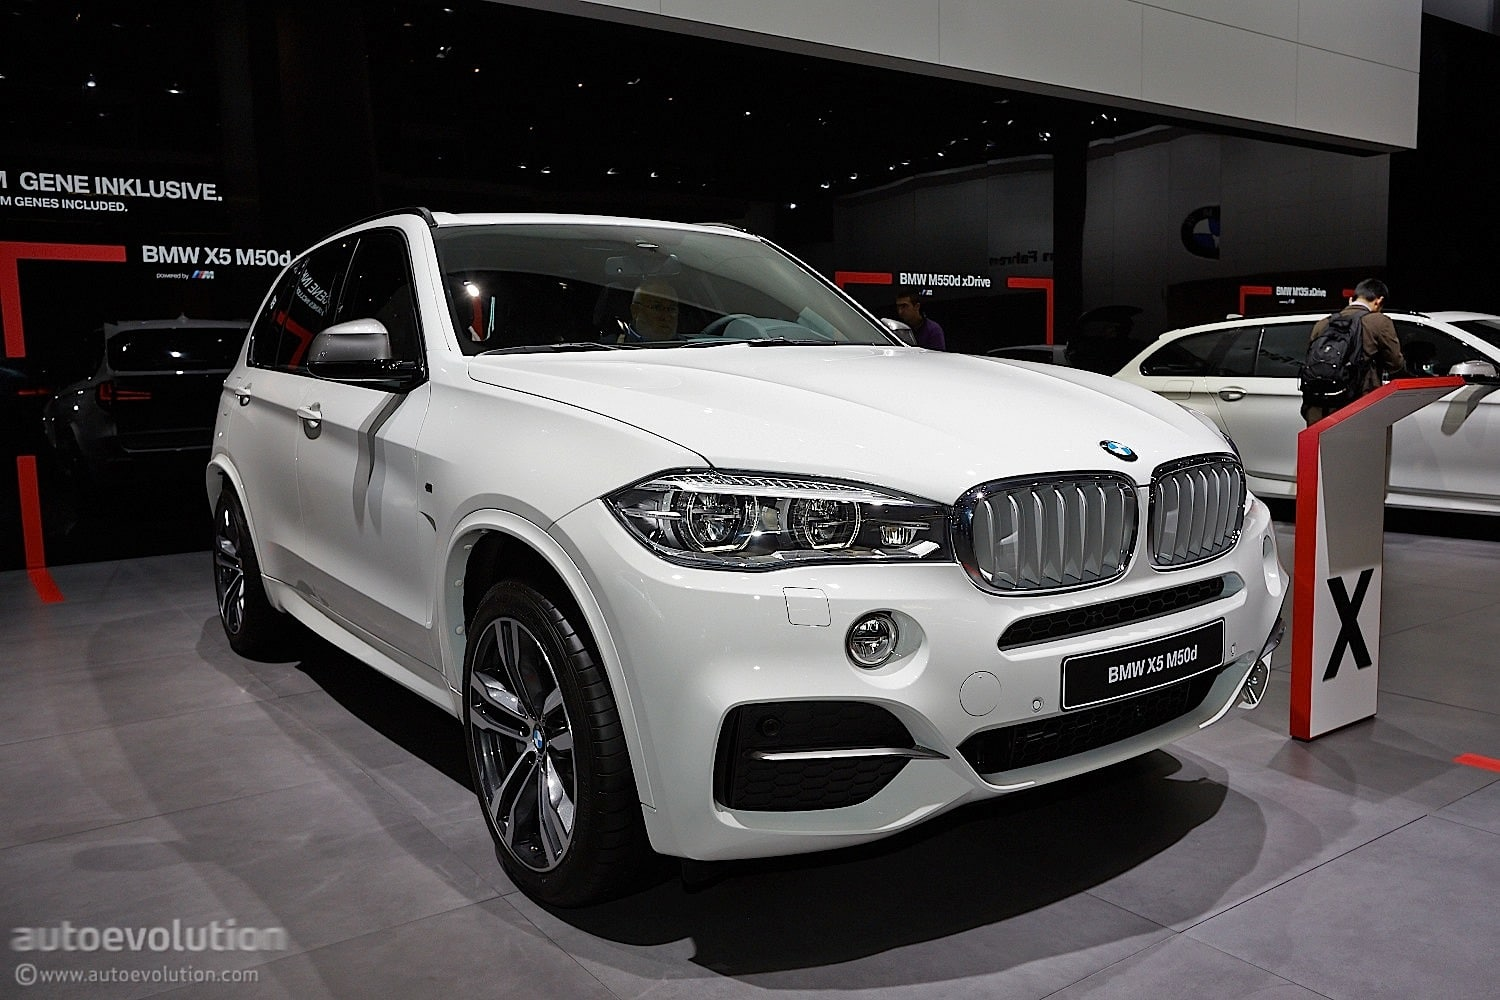 bmw x5 un suv 4x4 de luxe presque 7 places toutes les. Black Bedroom Furniture Sets. Home Design Ideas